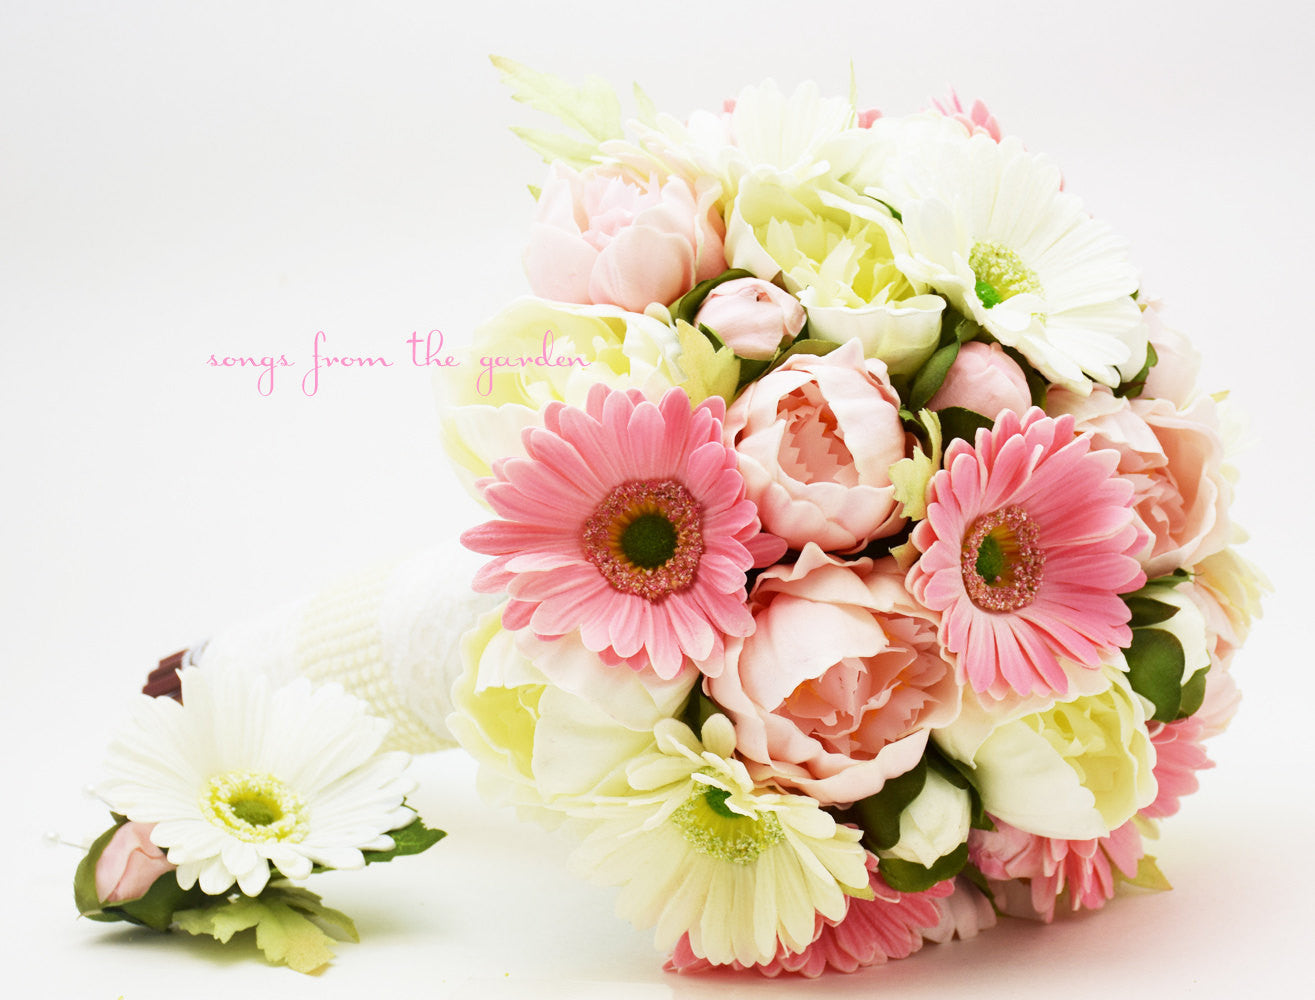 Pink & White Bridal Bouquet Real Touch Gerber Daisies and Peonies with Groom's Boutonniere